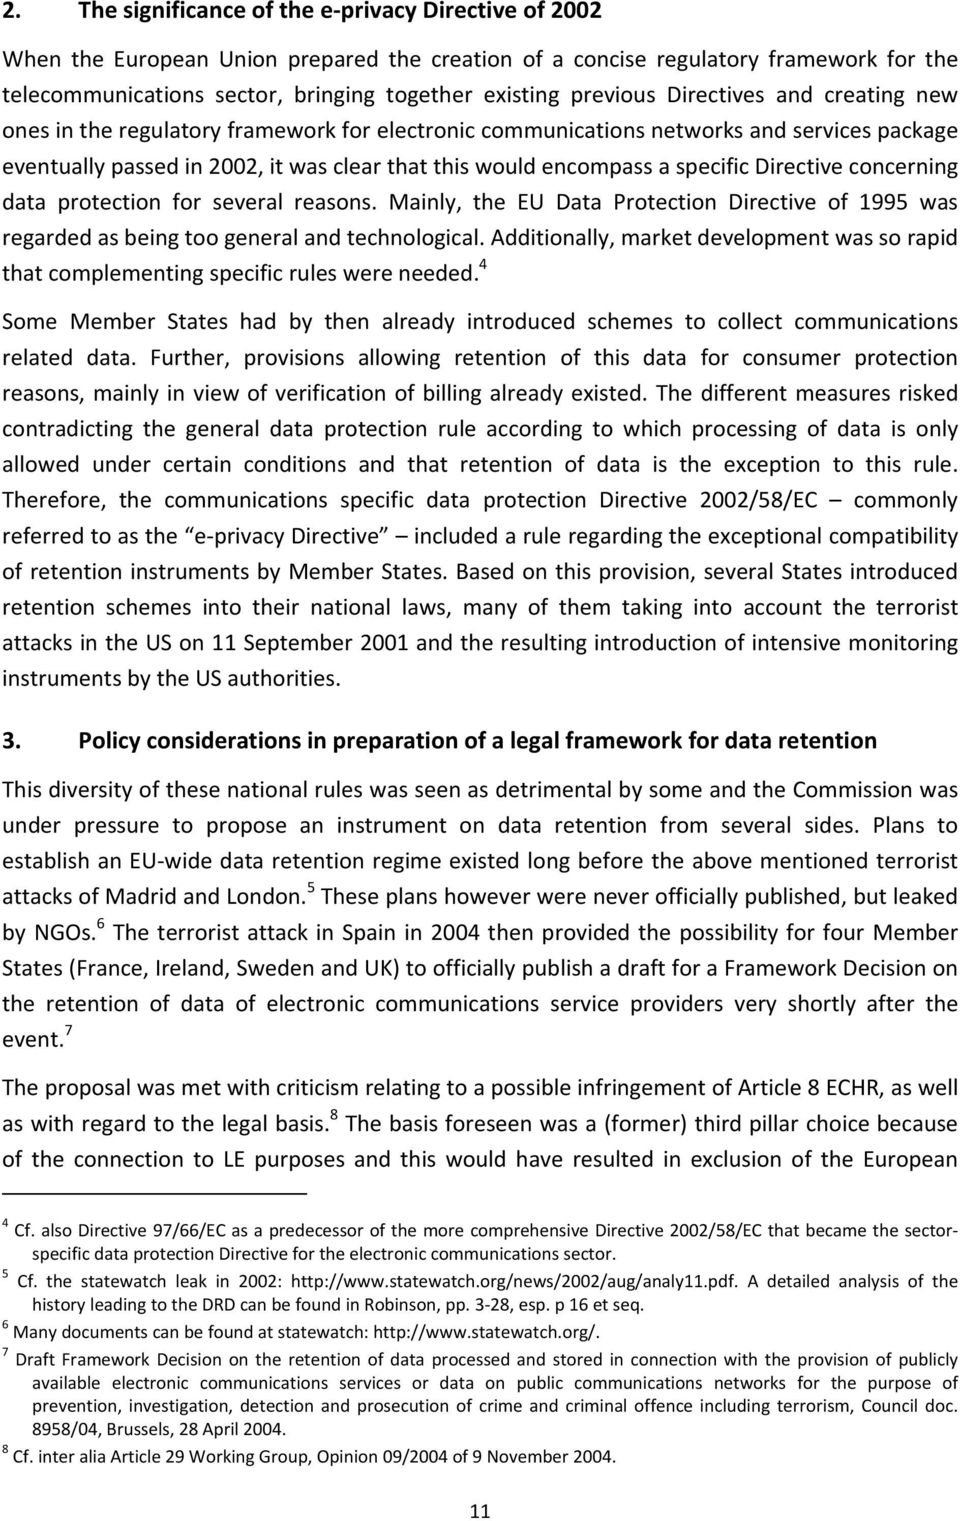 specific Directive concerning data protection for several reasons. Mainly, the EU Data Protection Directive of 1995 was regarded as being too general and technological.